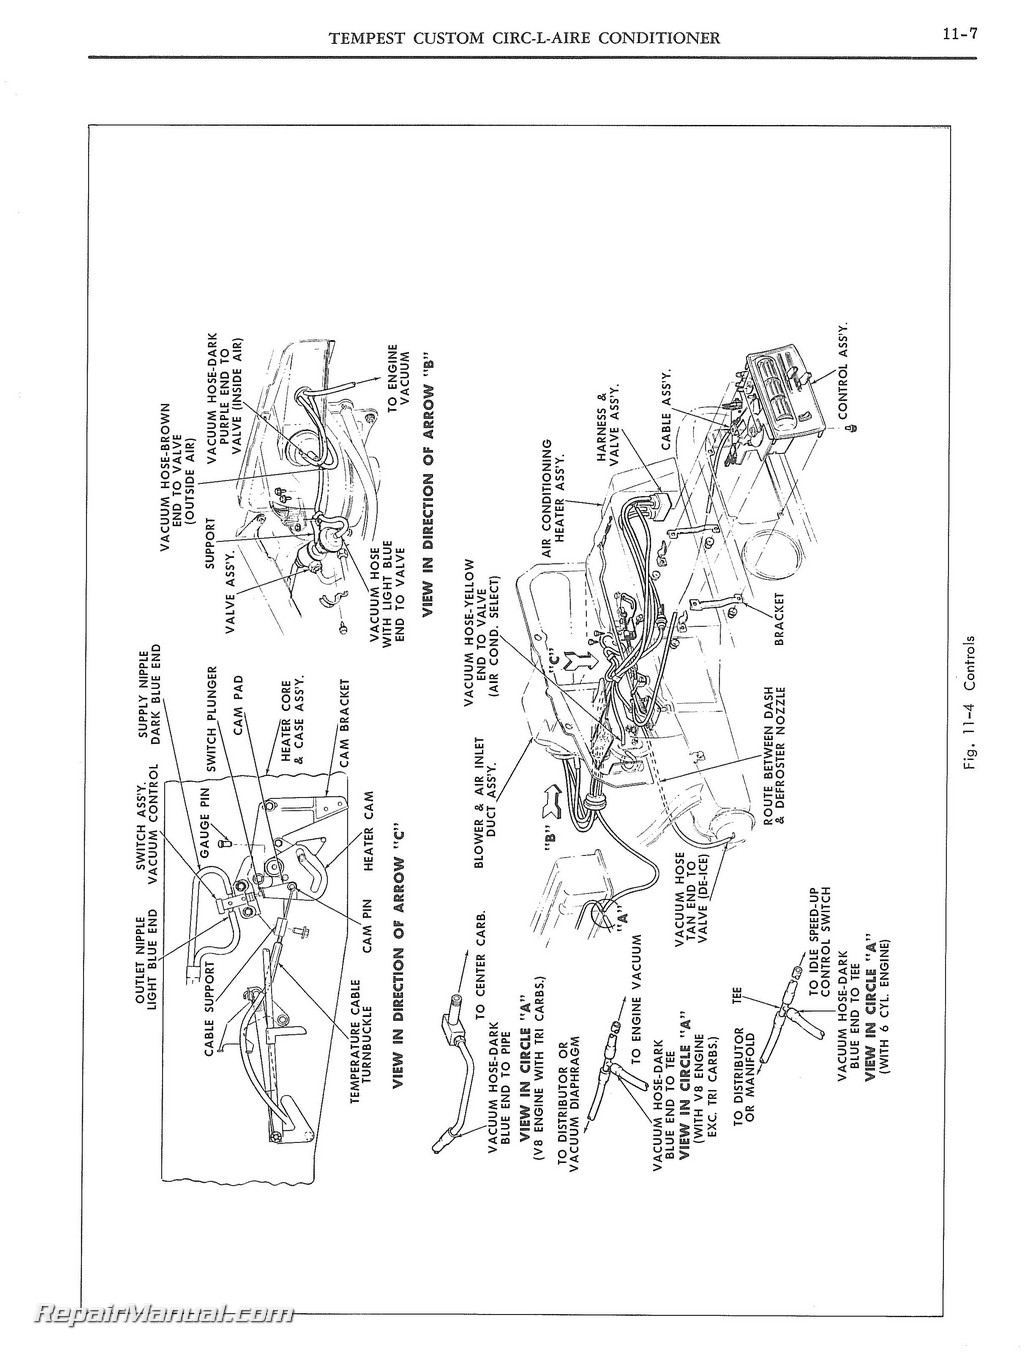 1956 Pontiac Heater Diagram Wiring 1958 Chieftain 1965 And Tempest Air Conditioning Manual Cars Source Star Chief Wikipedia 1957